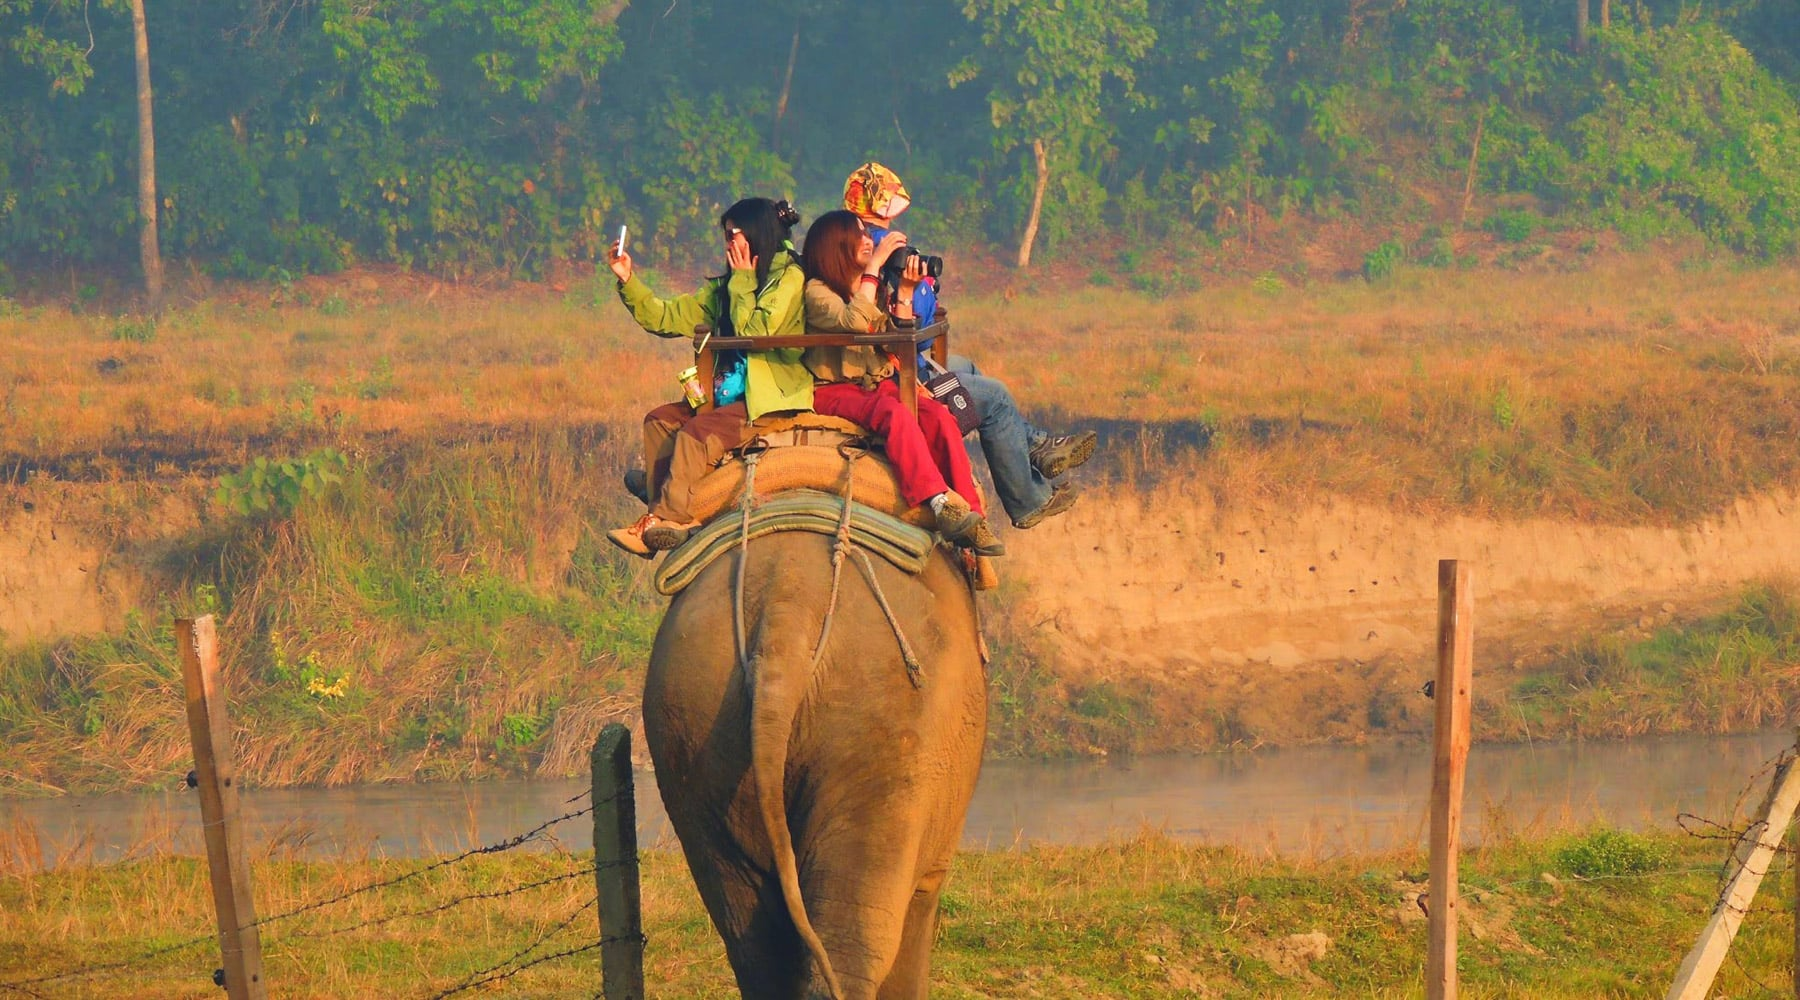 Chitwan National Park – A World Heritage Site in Nepal